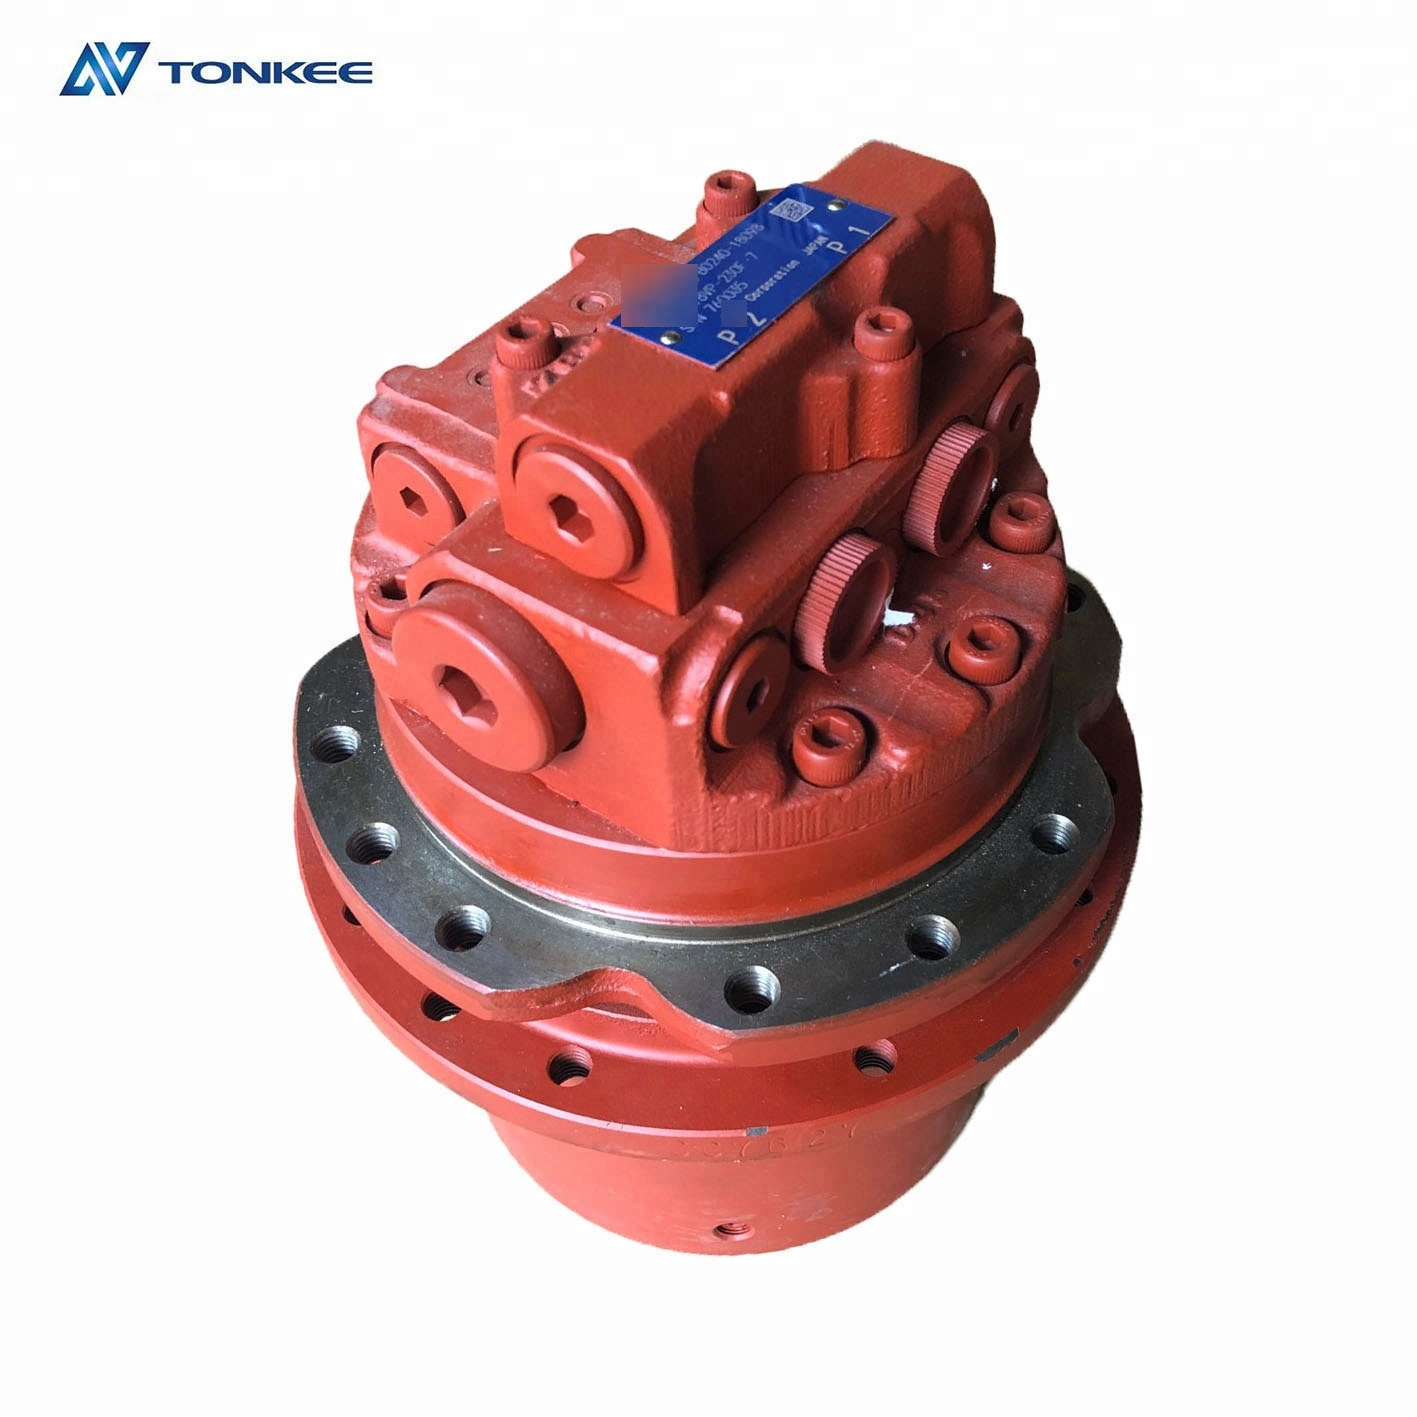 SK27SR-3 travel motor MAG18VP MAG-18VP-230F HYDRAULIC FINAL DRIVE ASSY  SK27 TRAVEL MOTOR ASSEMBLY for KYB